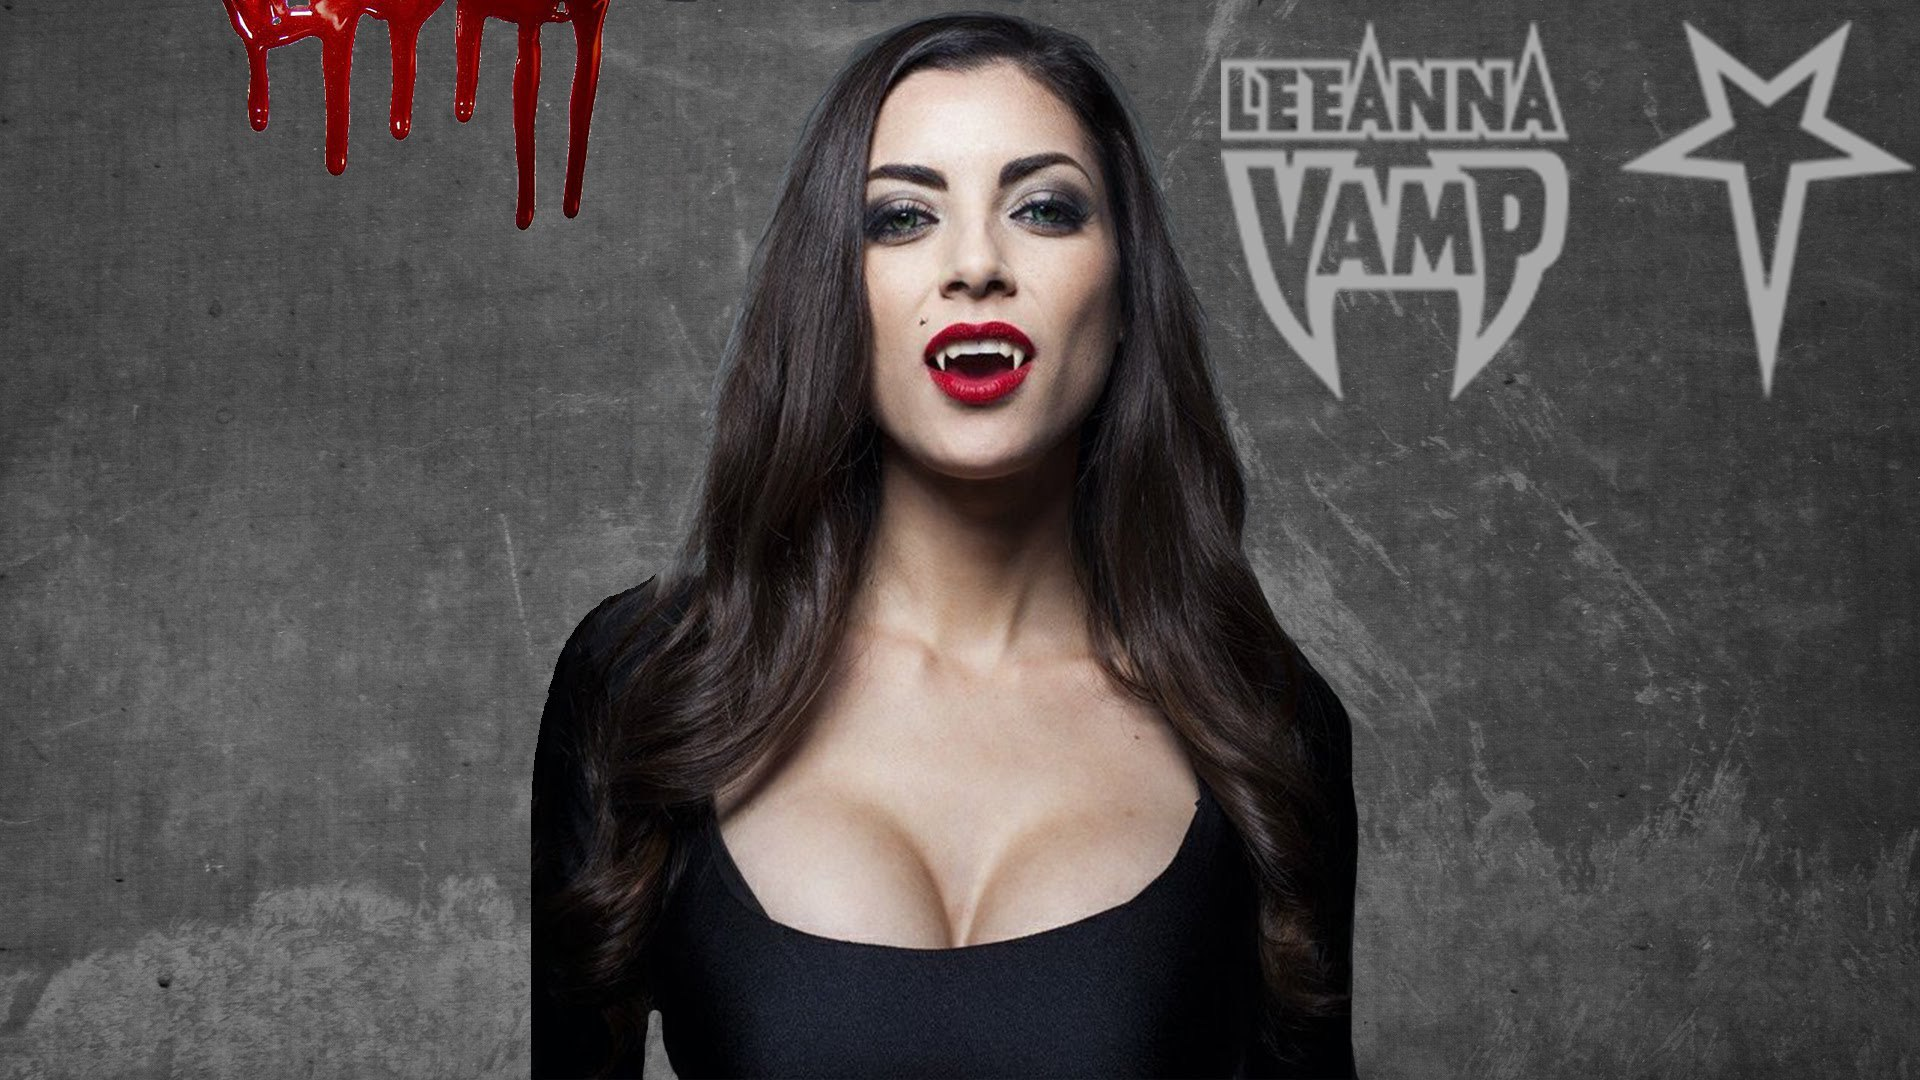 Leeanna Vamp Wallpapers Images Photos Pictures Backgrounds